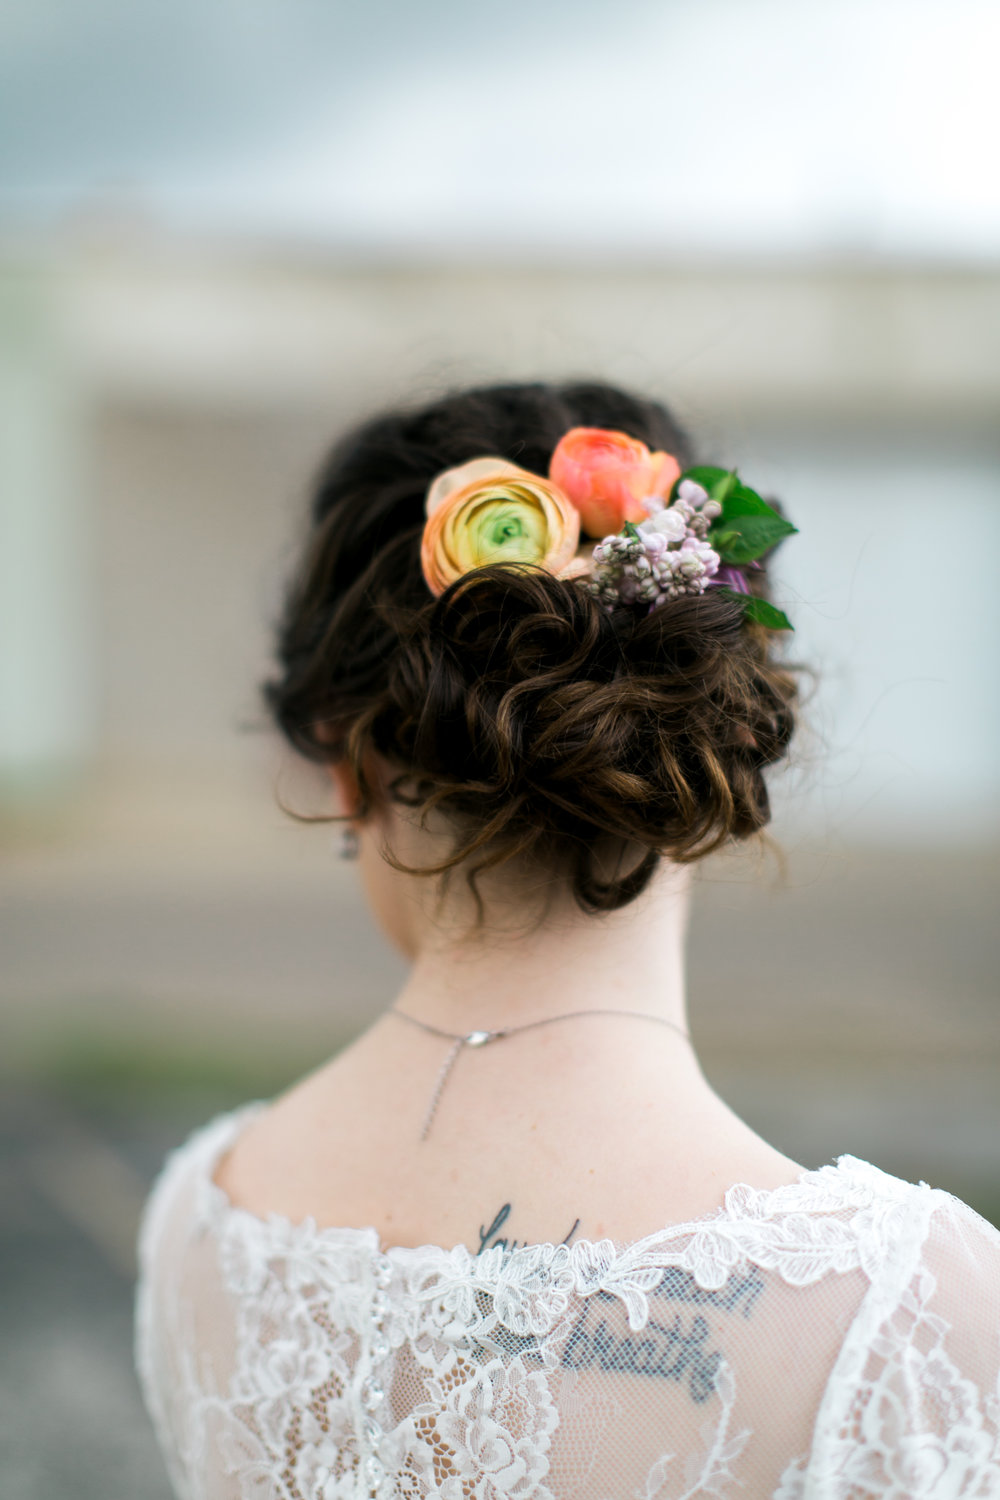 wedding floral hair piece design by Parie Designs, Amarillo Texas wedding coordination and design